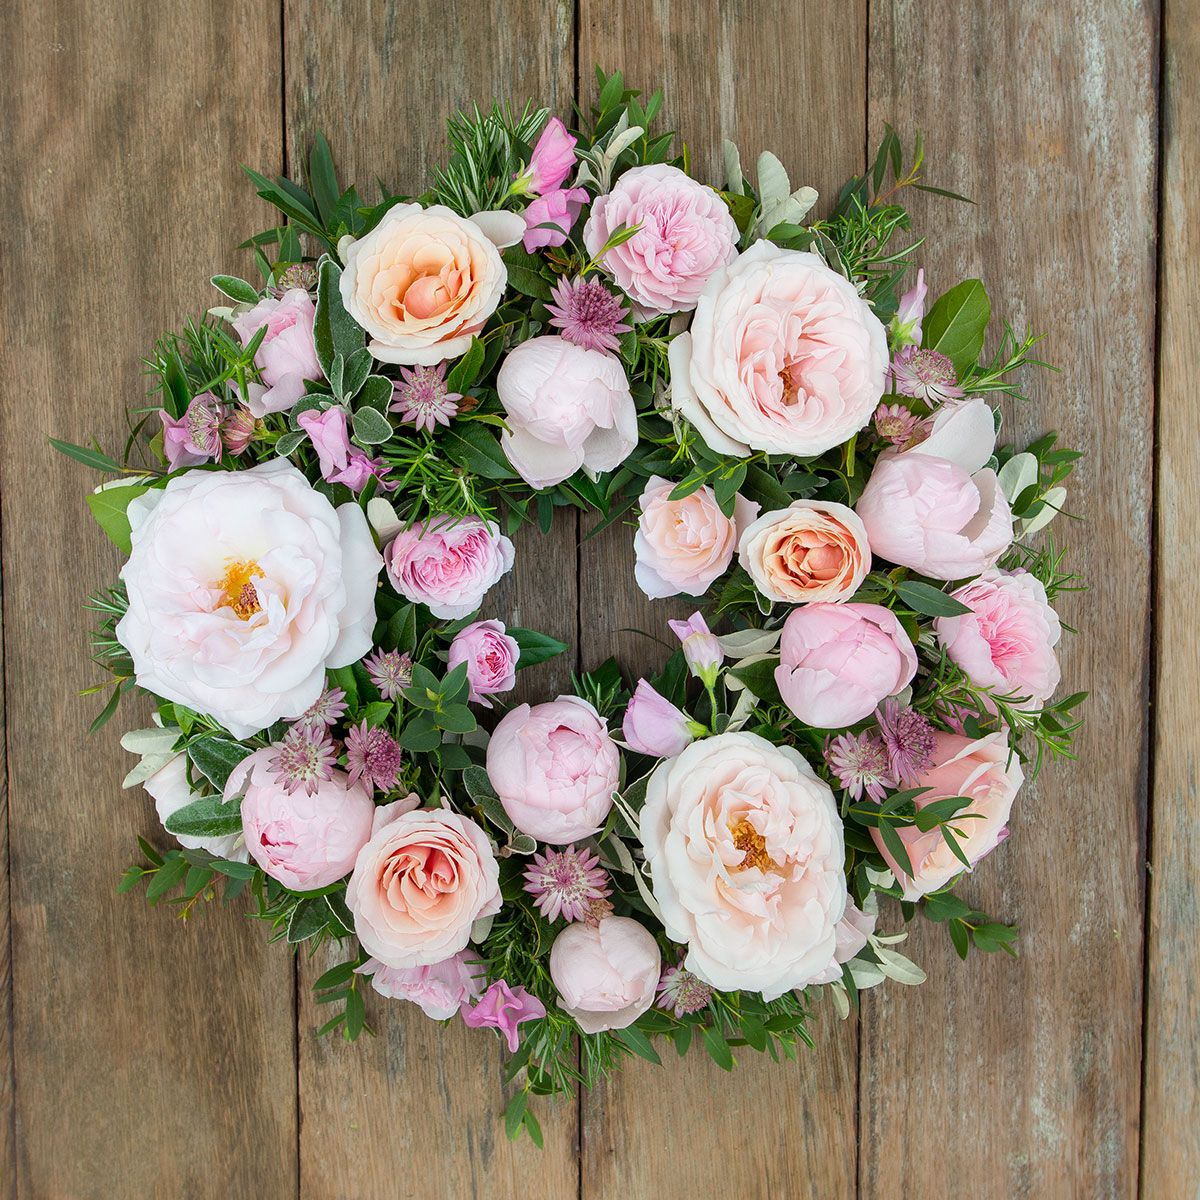 Pastel Pink Funeral Wreath Funeral Flowers The Real Flower Company